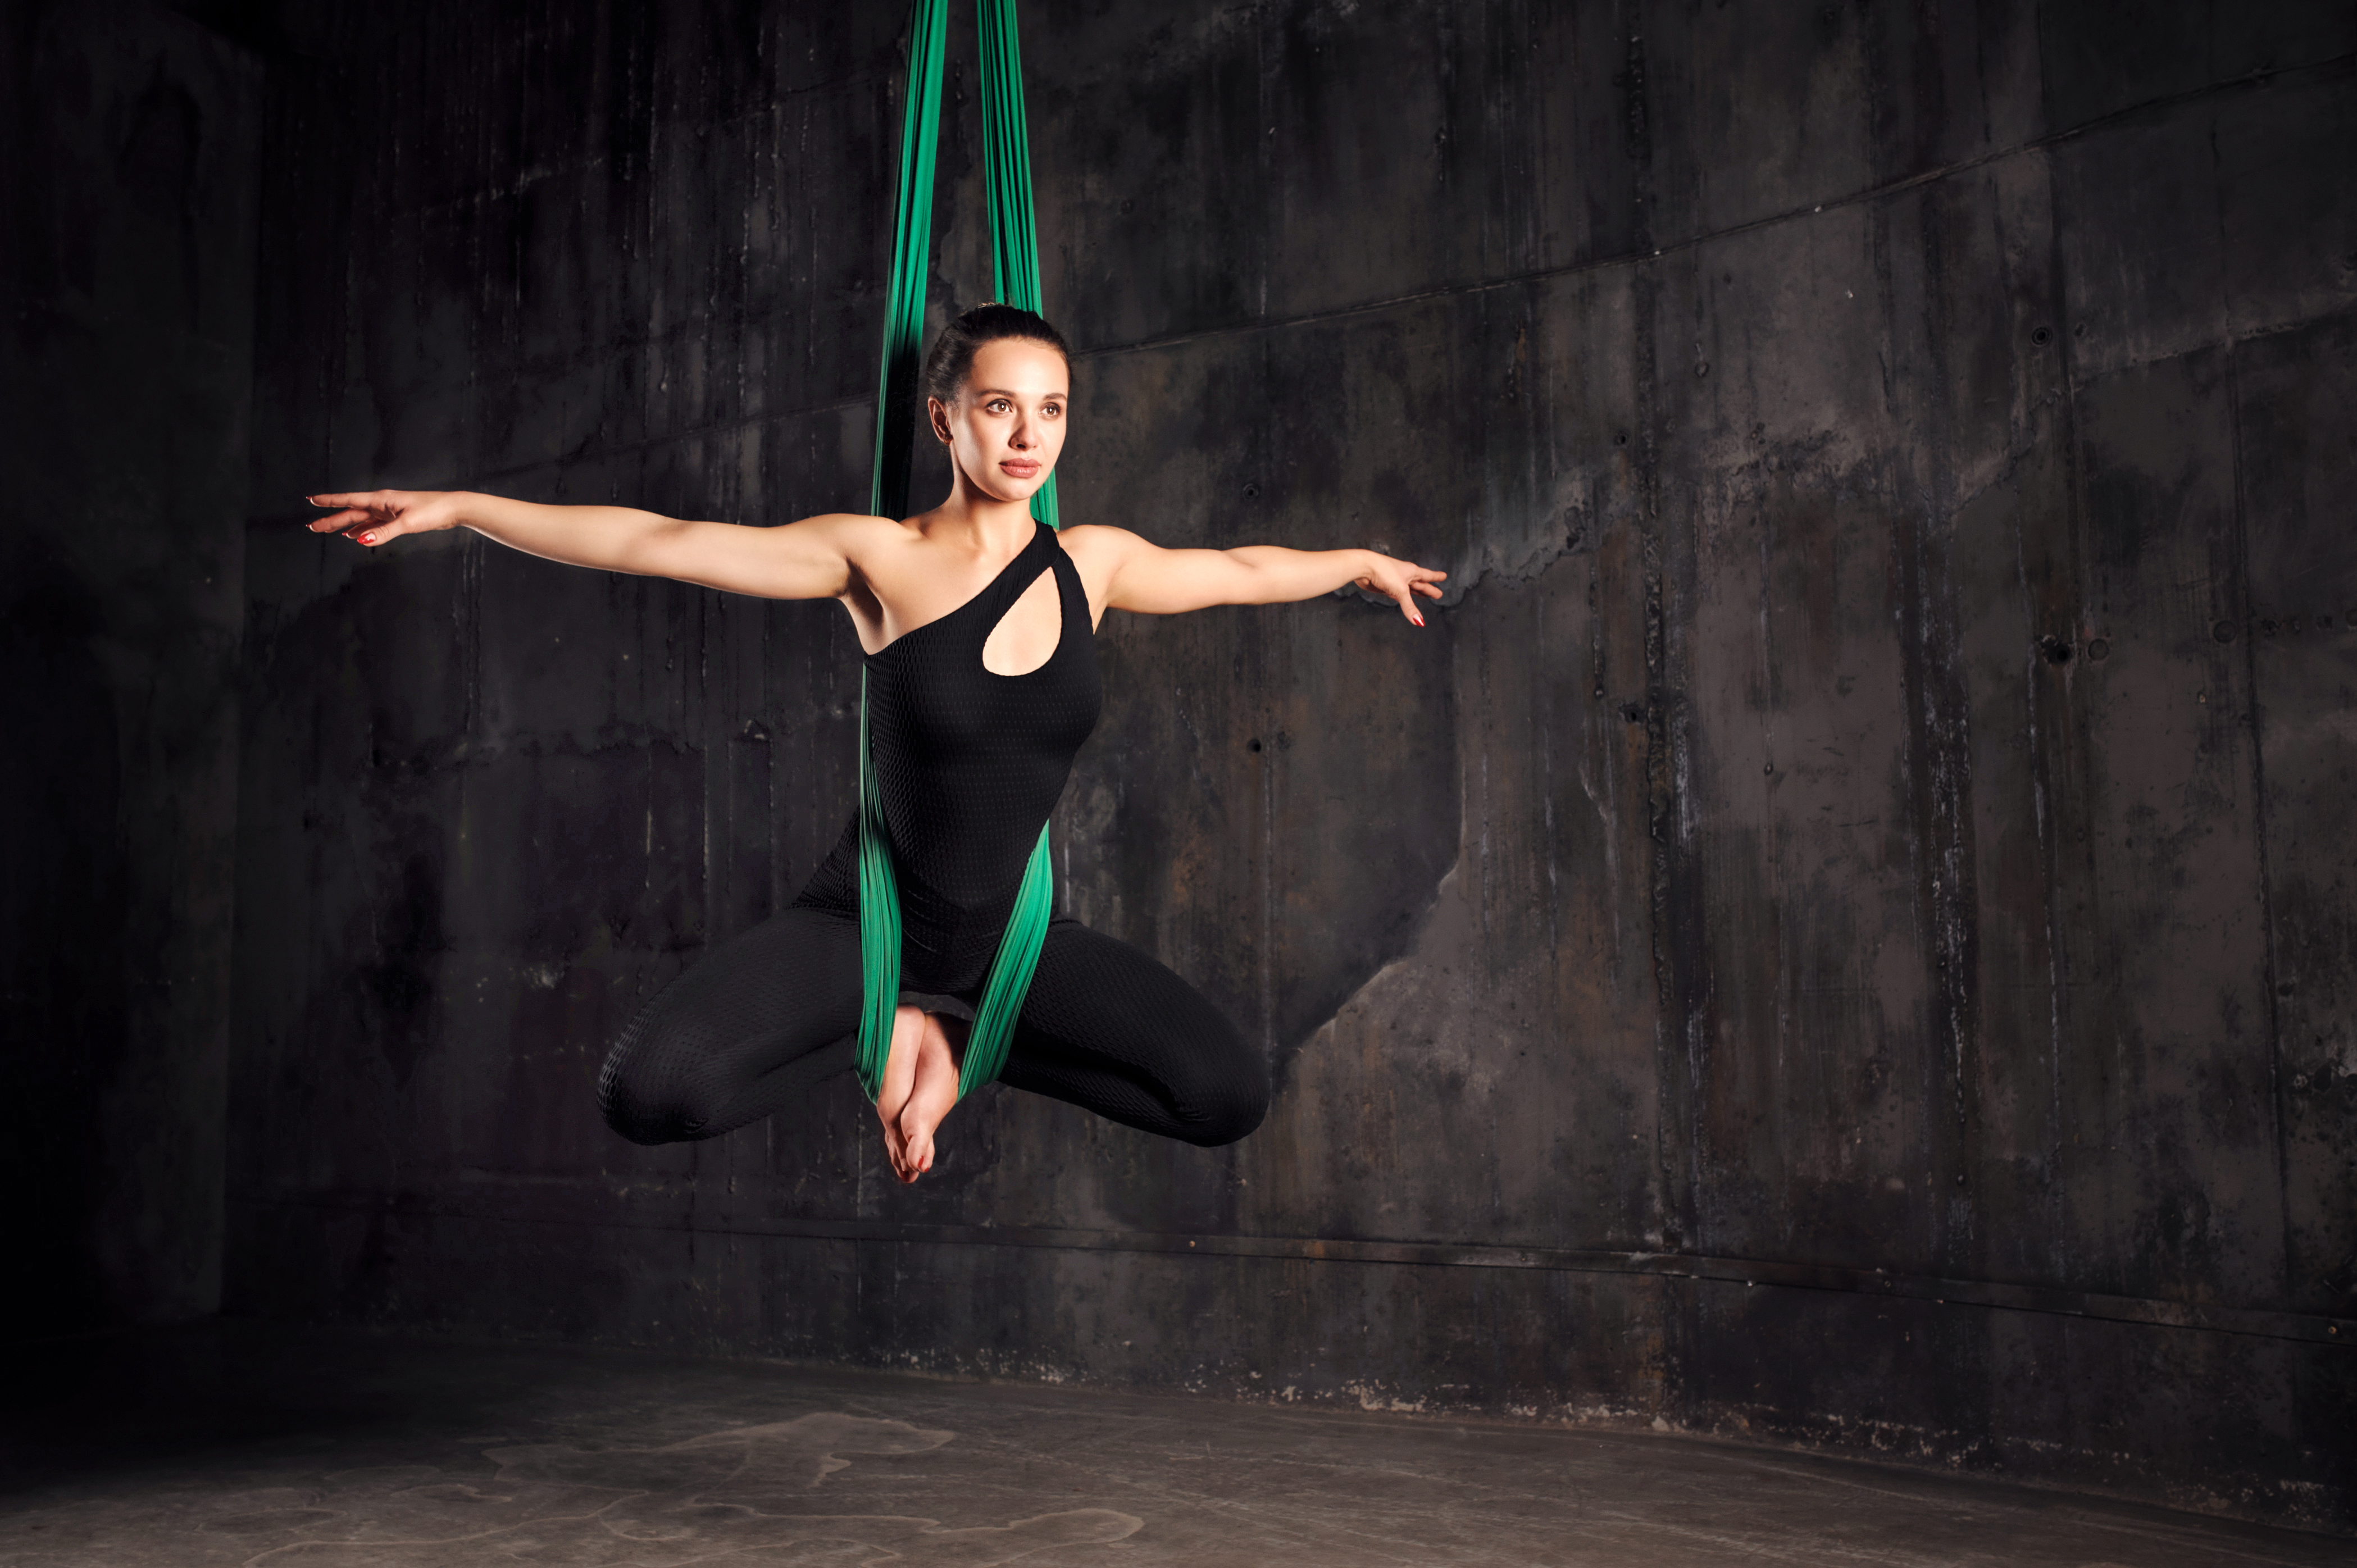 Aerial Yoga and Its Amazing Benefits